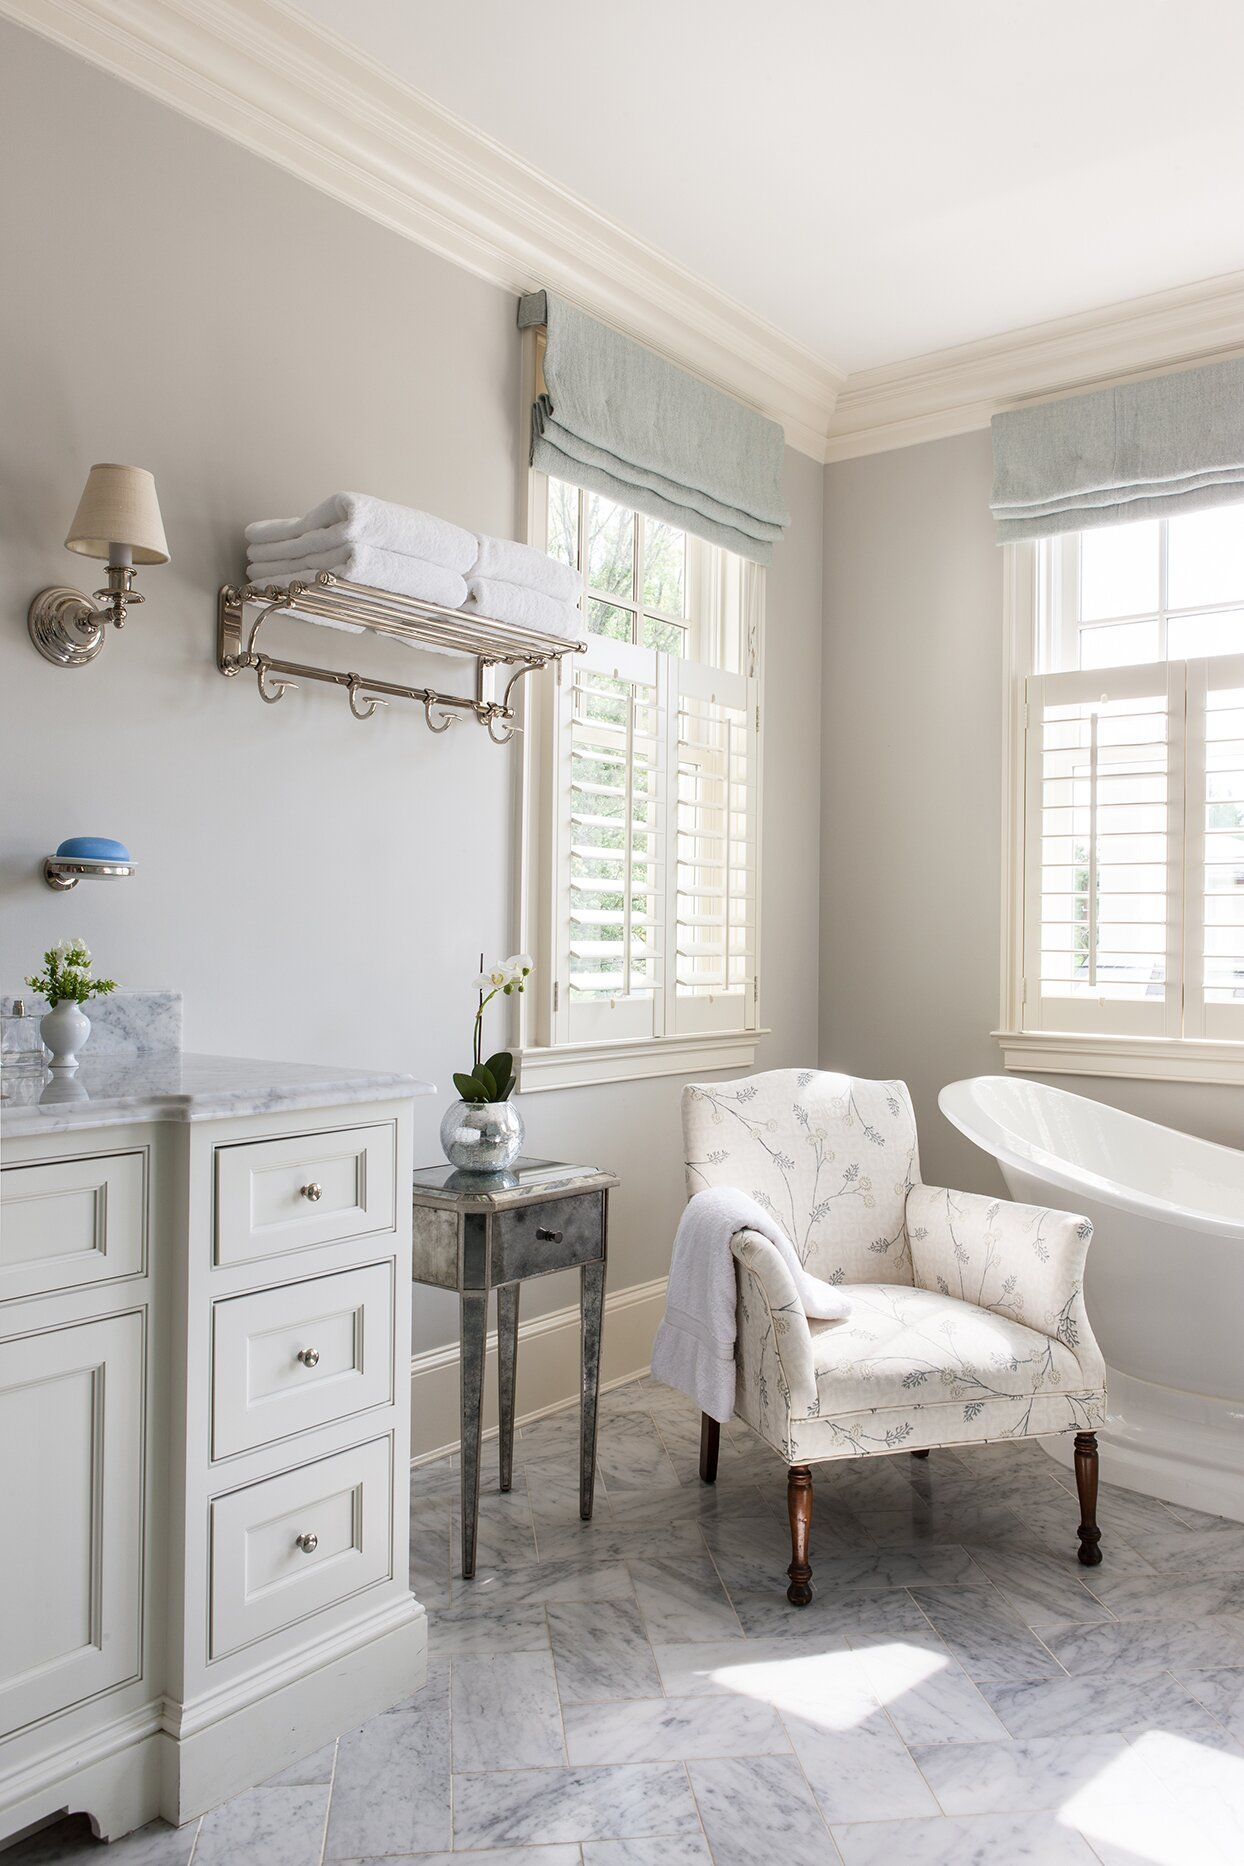 15 Soothing Paint Colors to Create a Calming Space in 2020